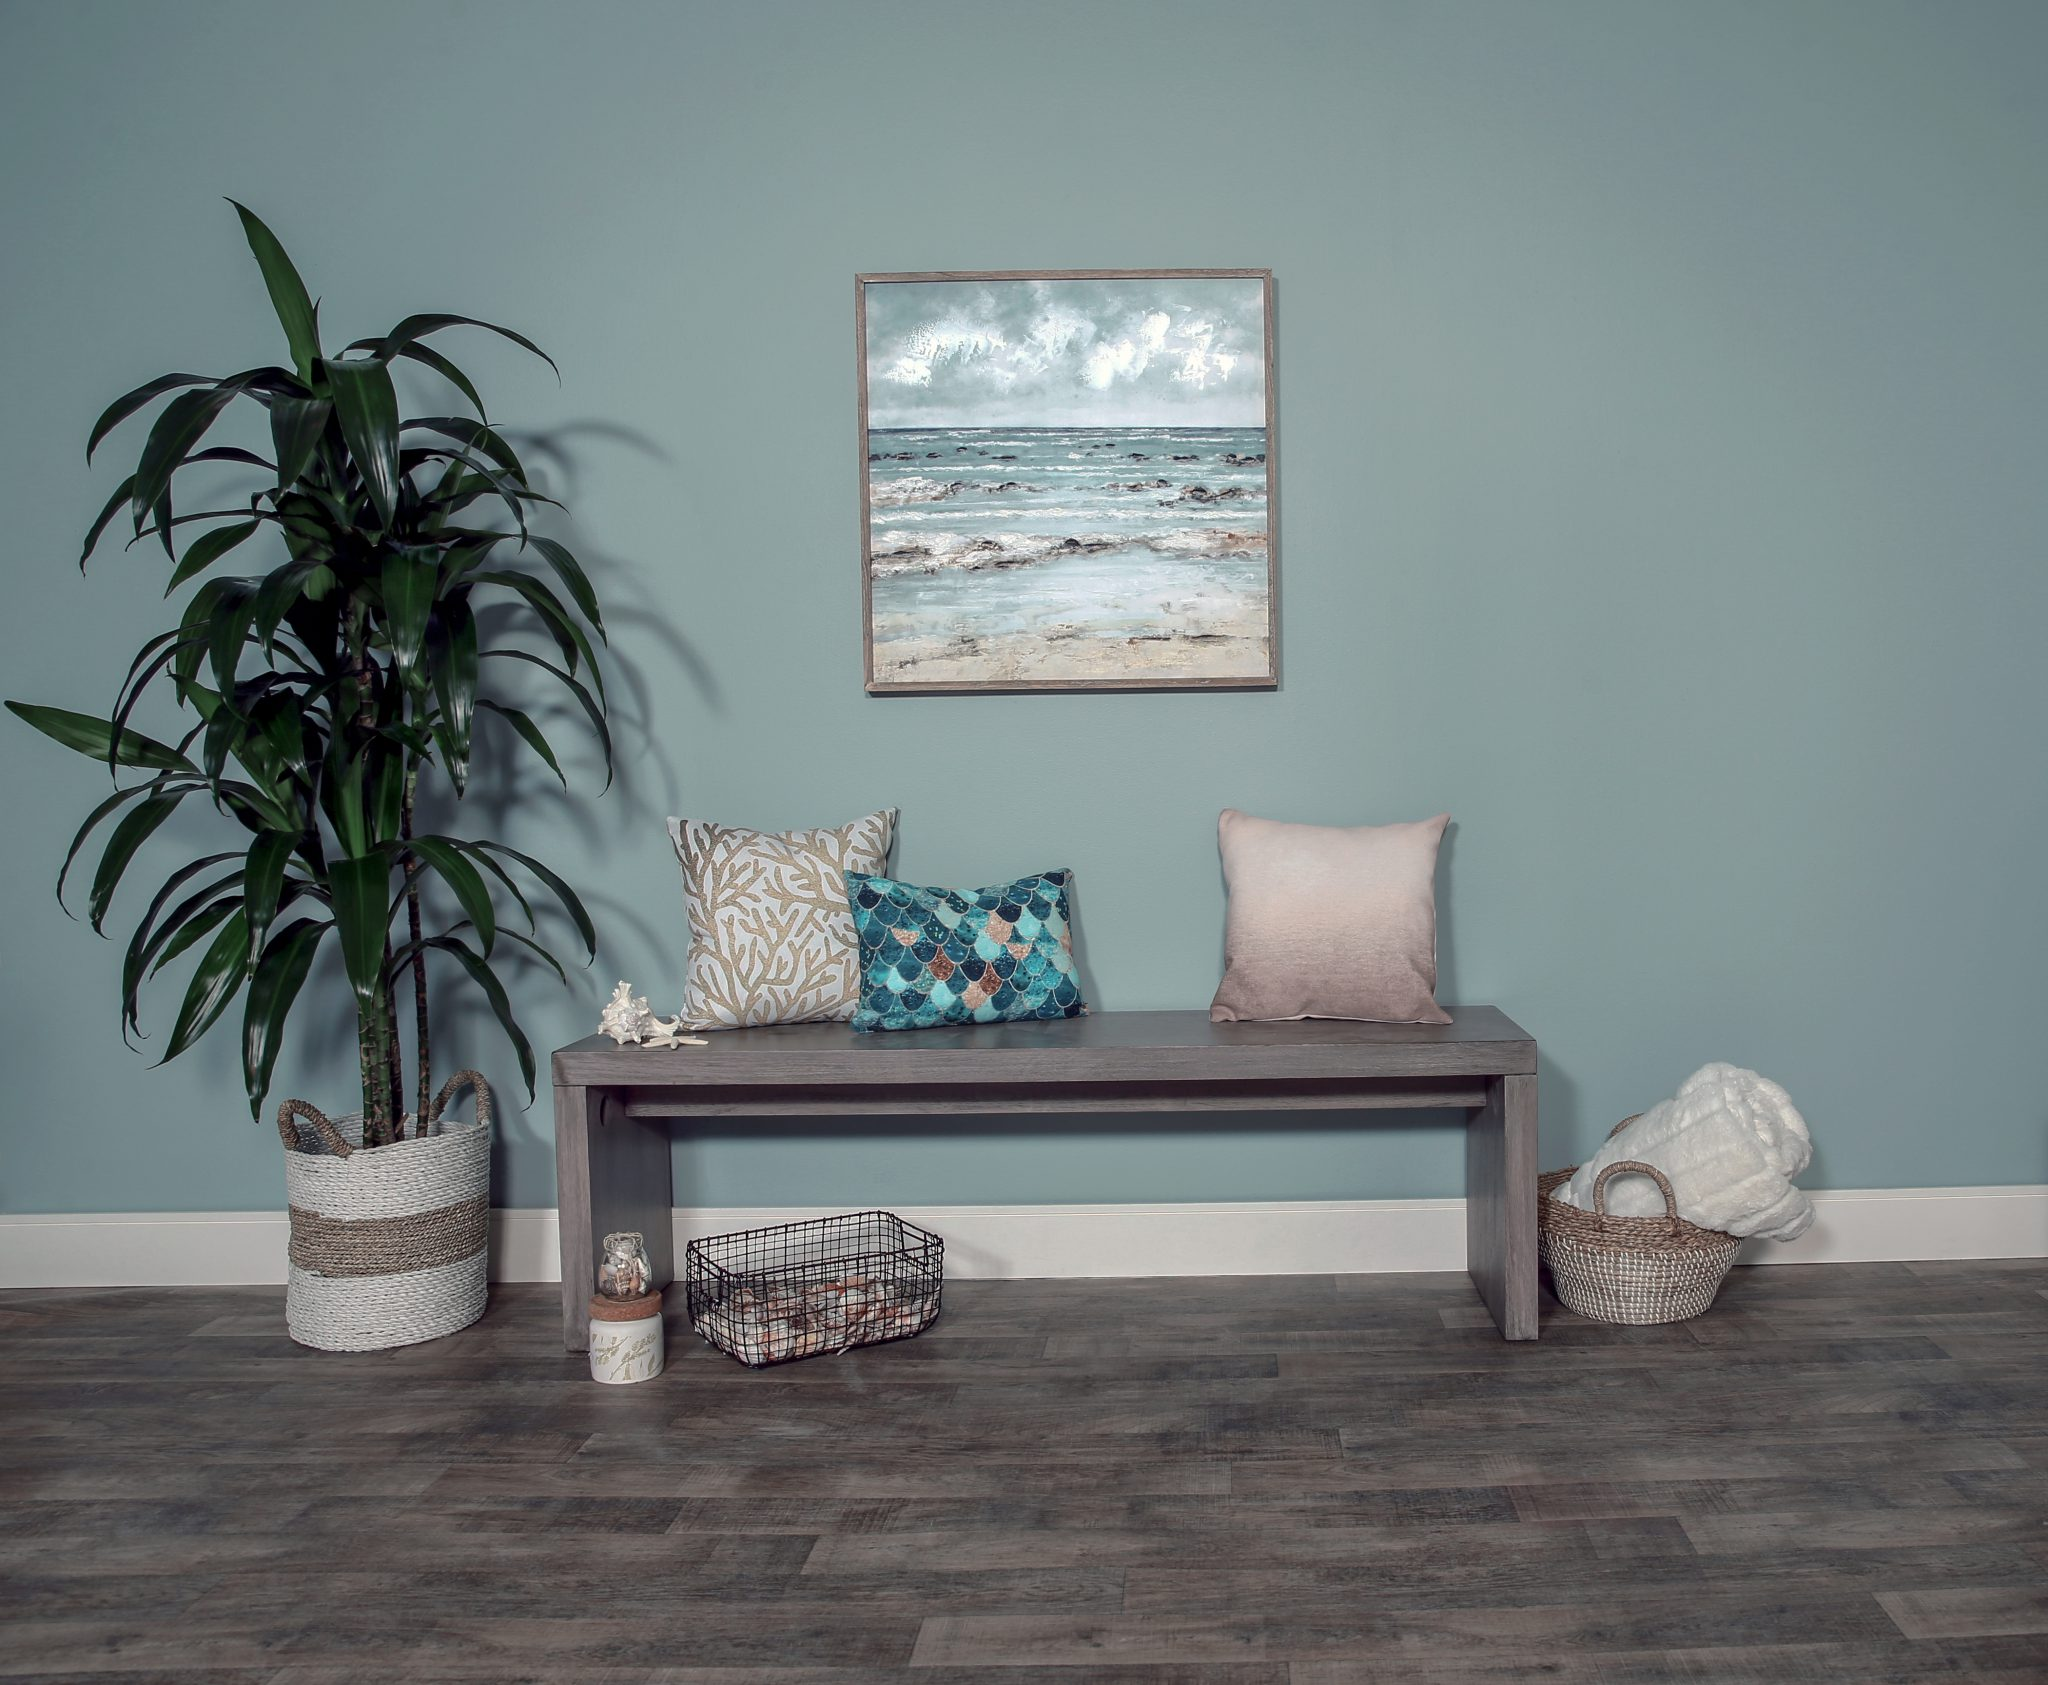 Best of Behr: Blue Gray Paint Colors - Image via Behr, feat. wall paint color: 'Watery' by Behr